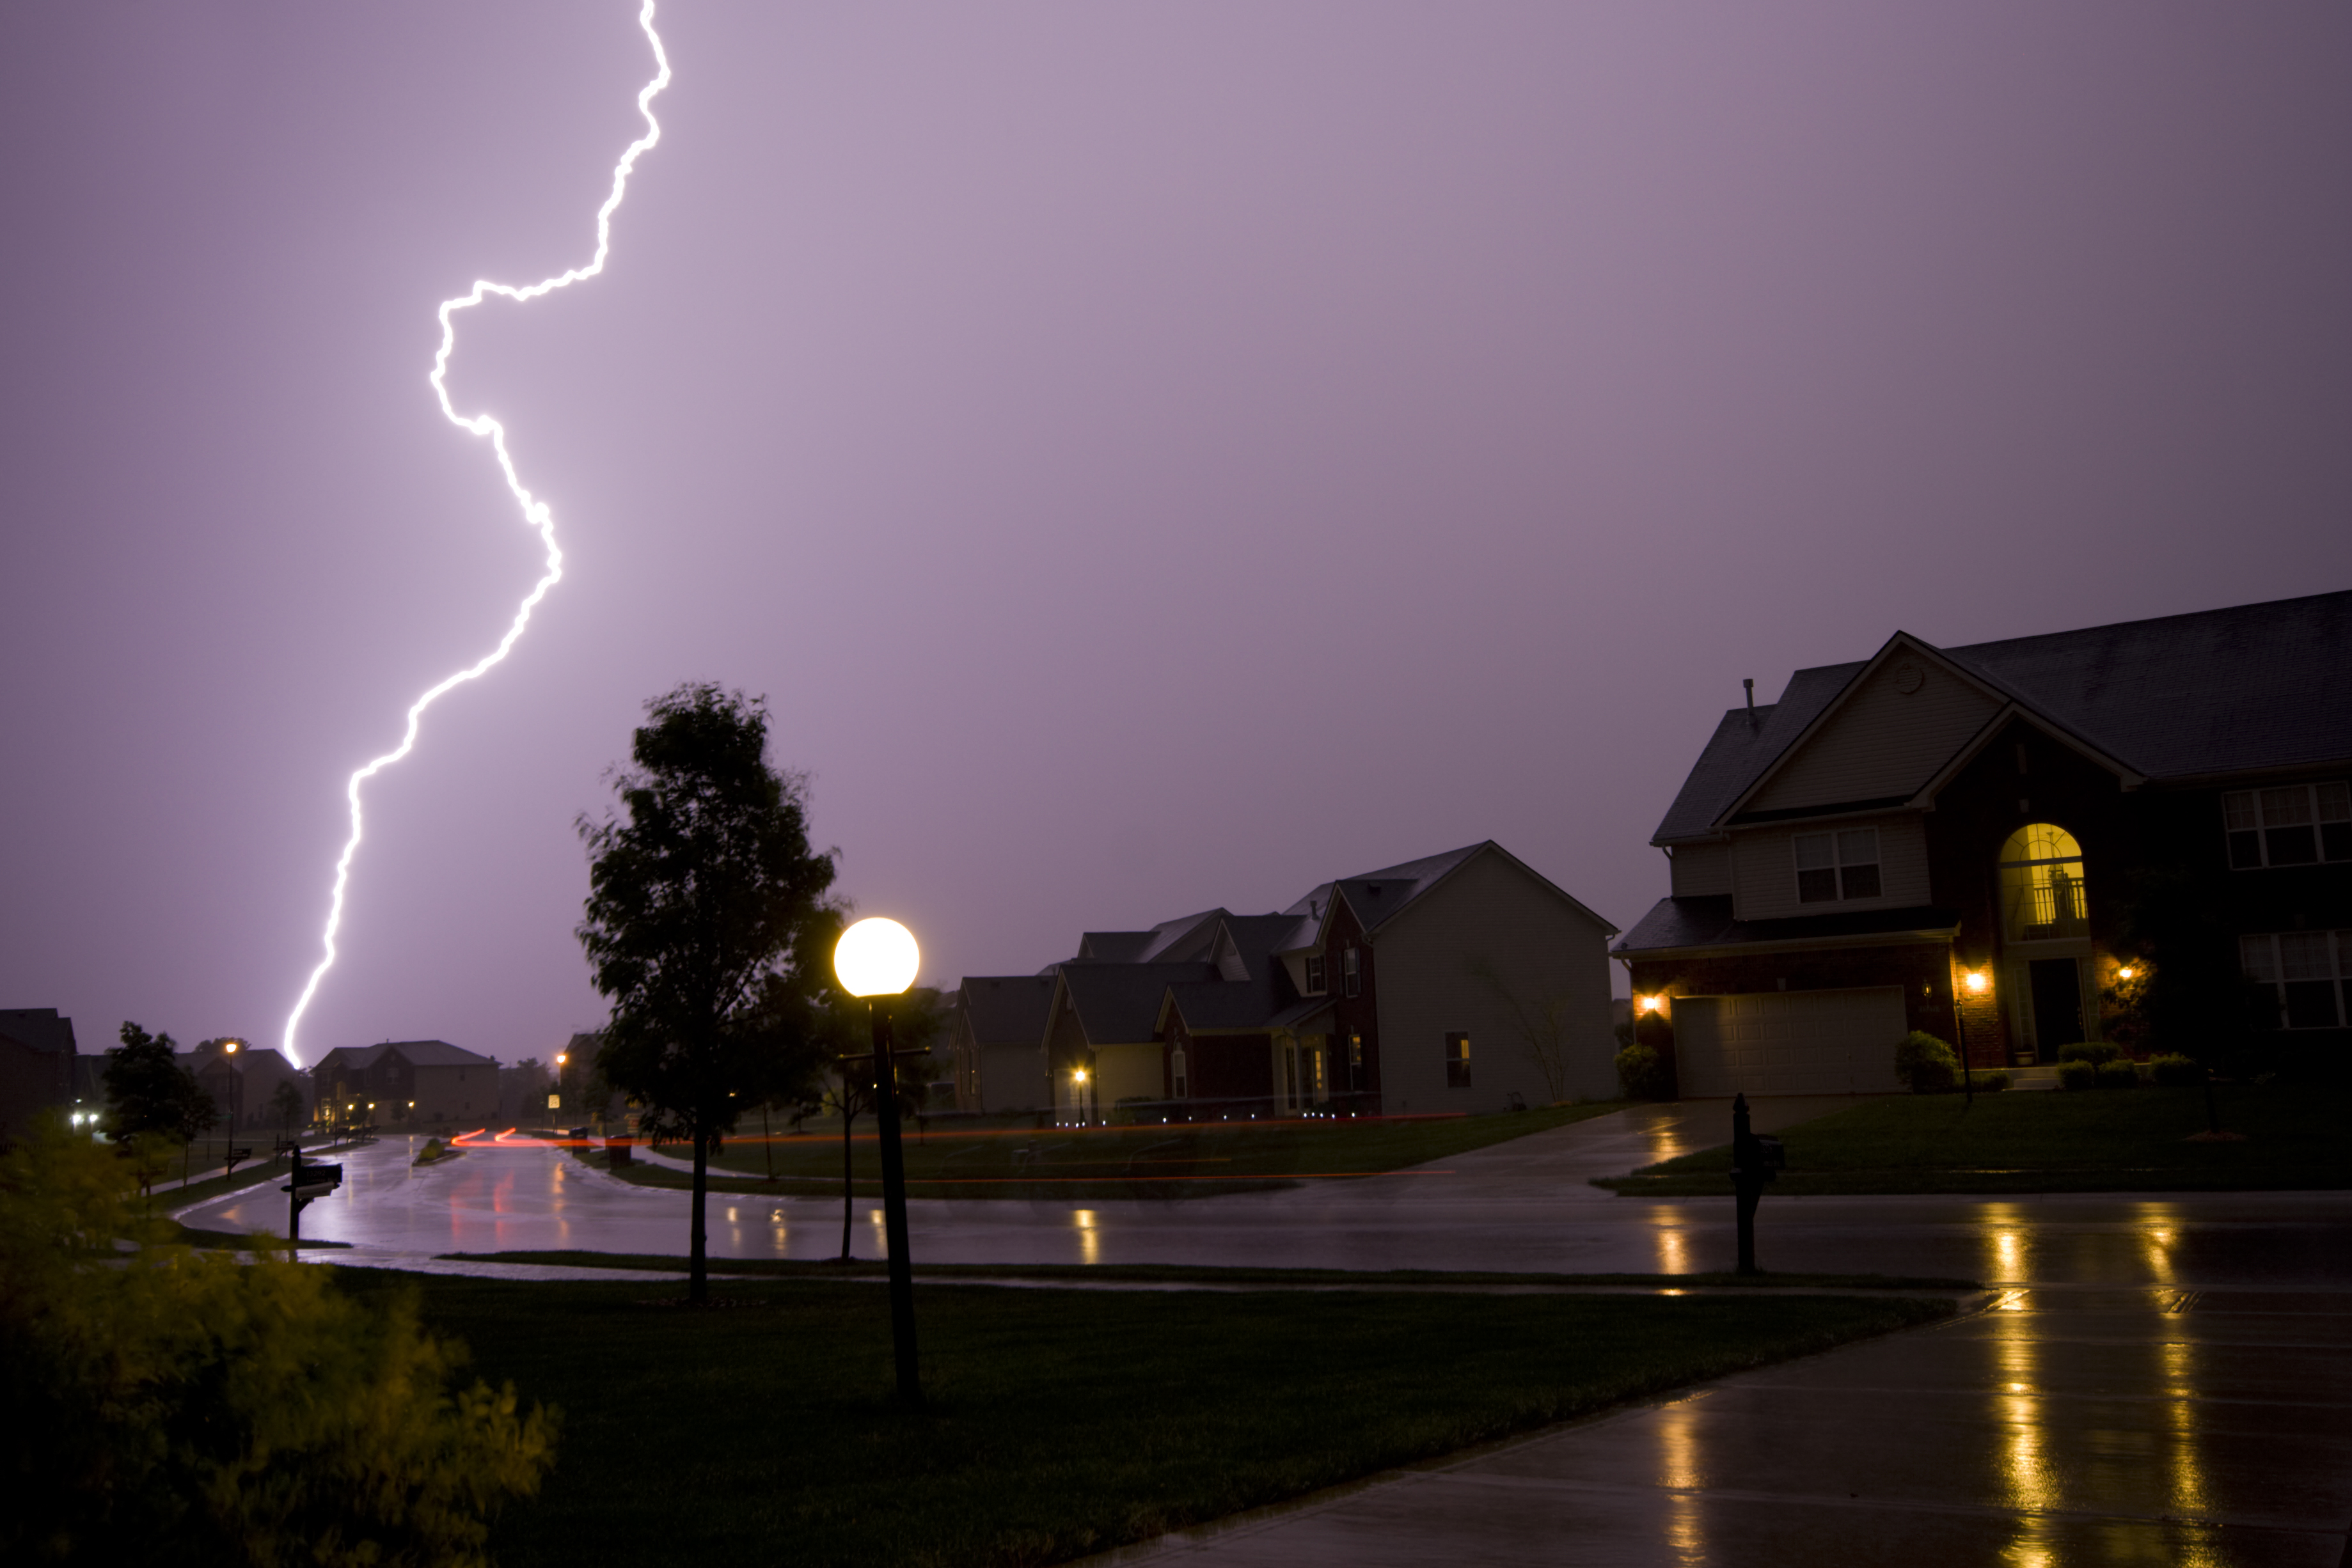 Swimming Pools and Lightning